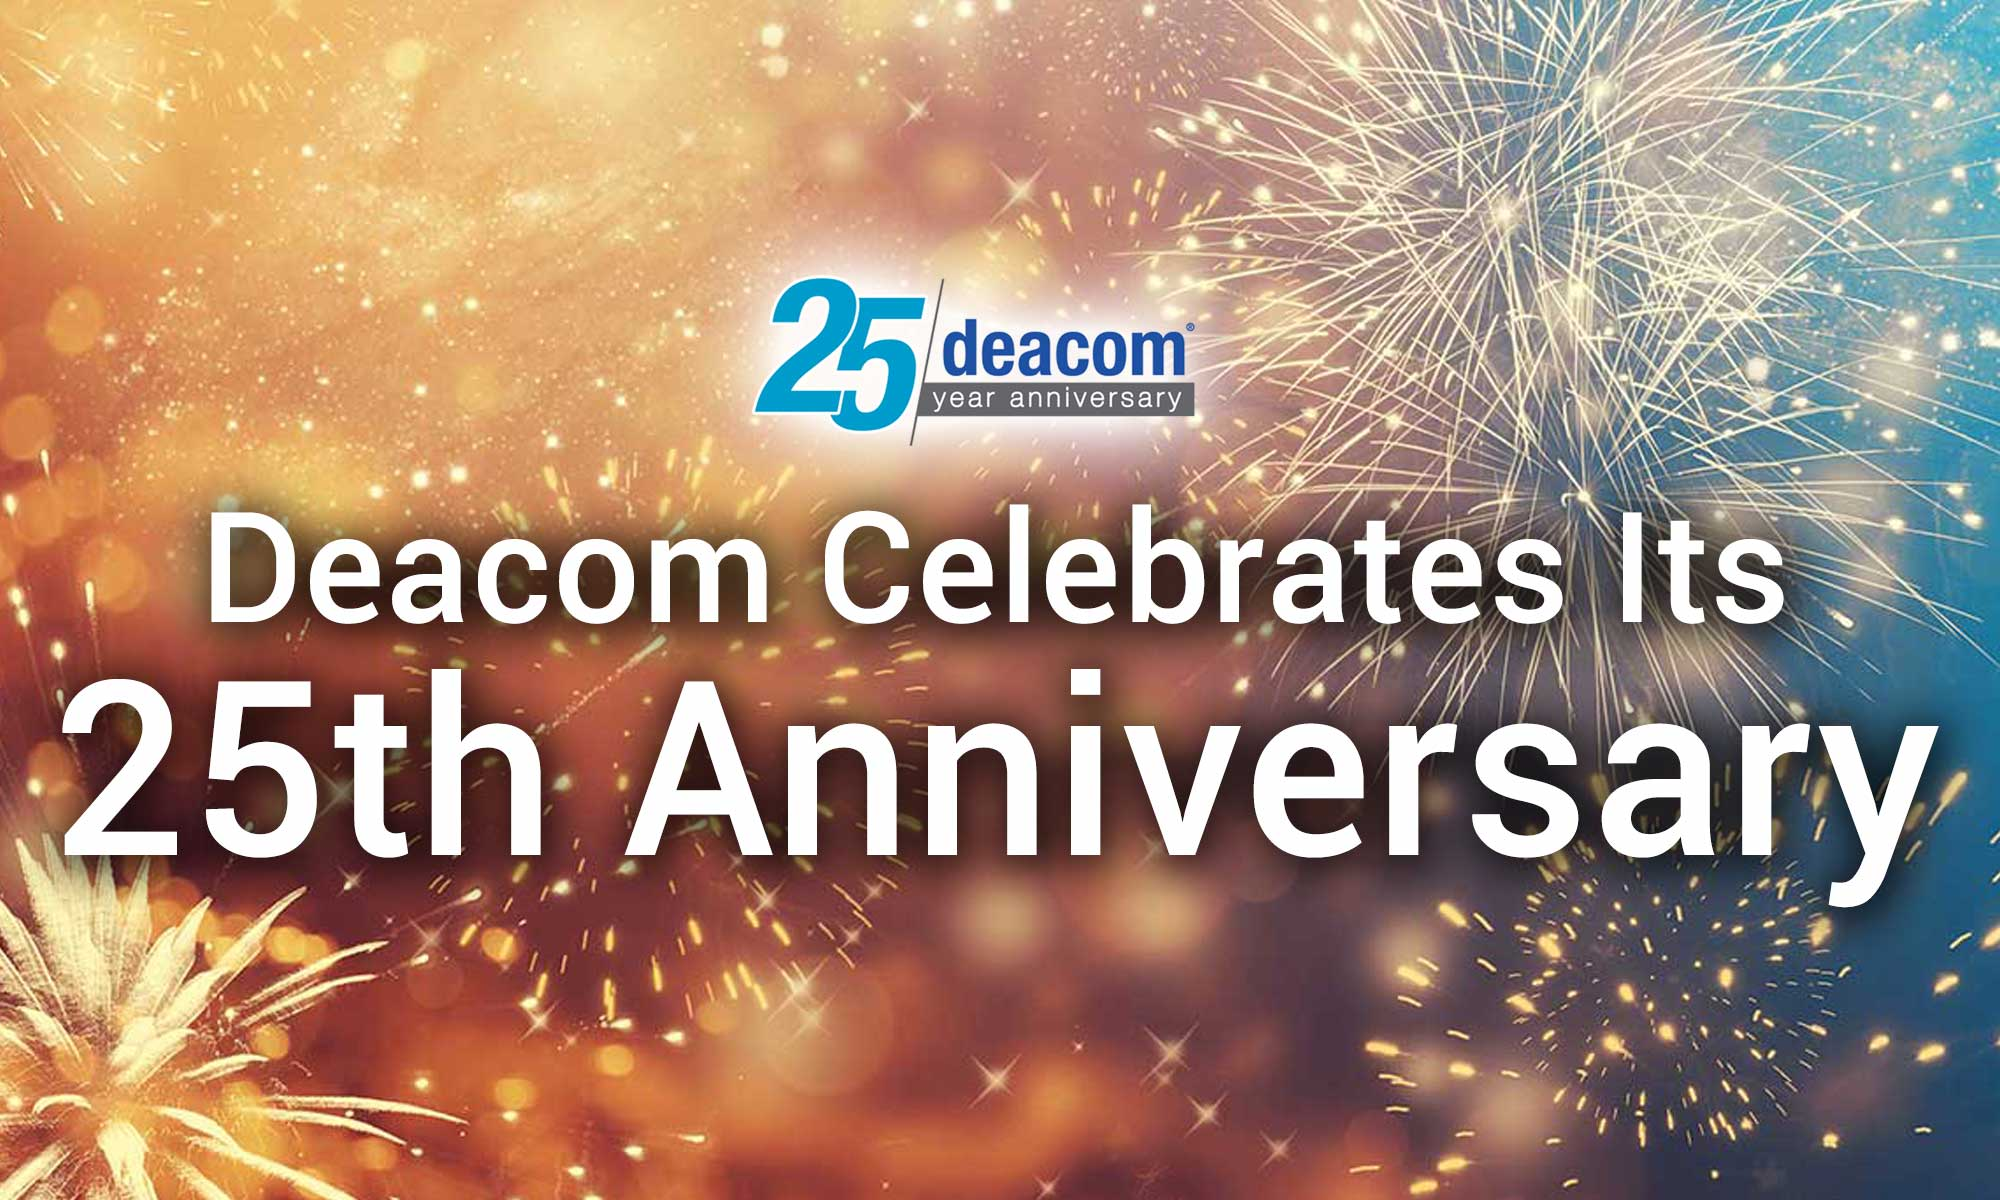 Deacom Celebrates Its 25th Anniversary